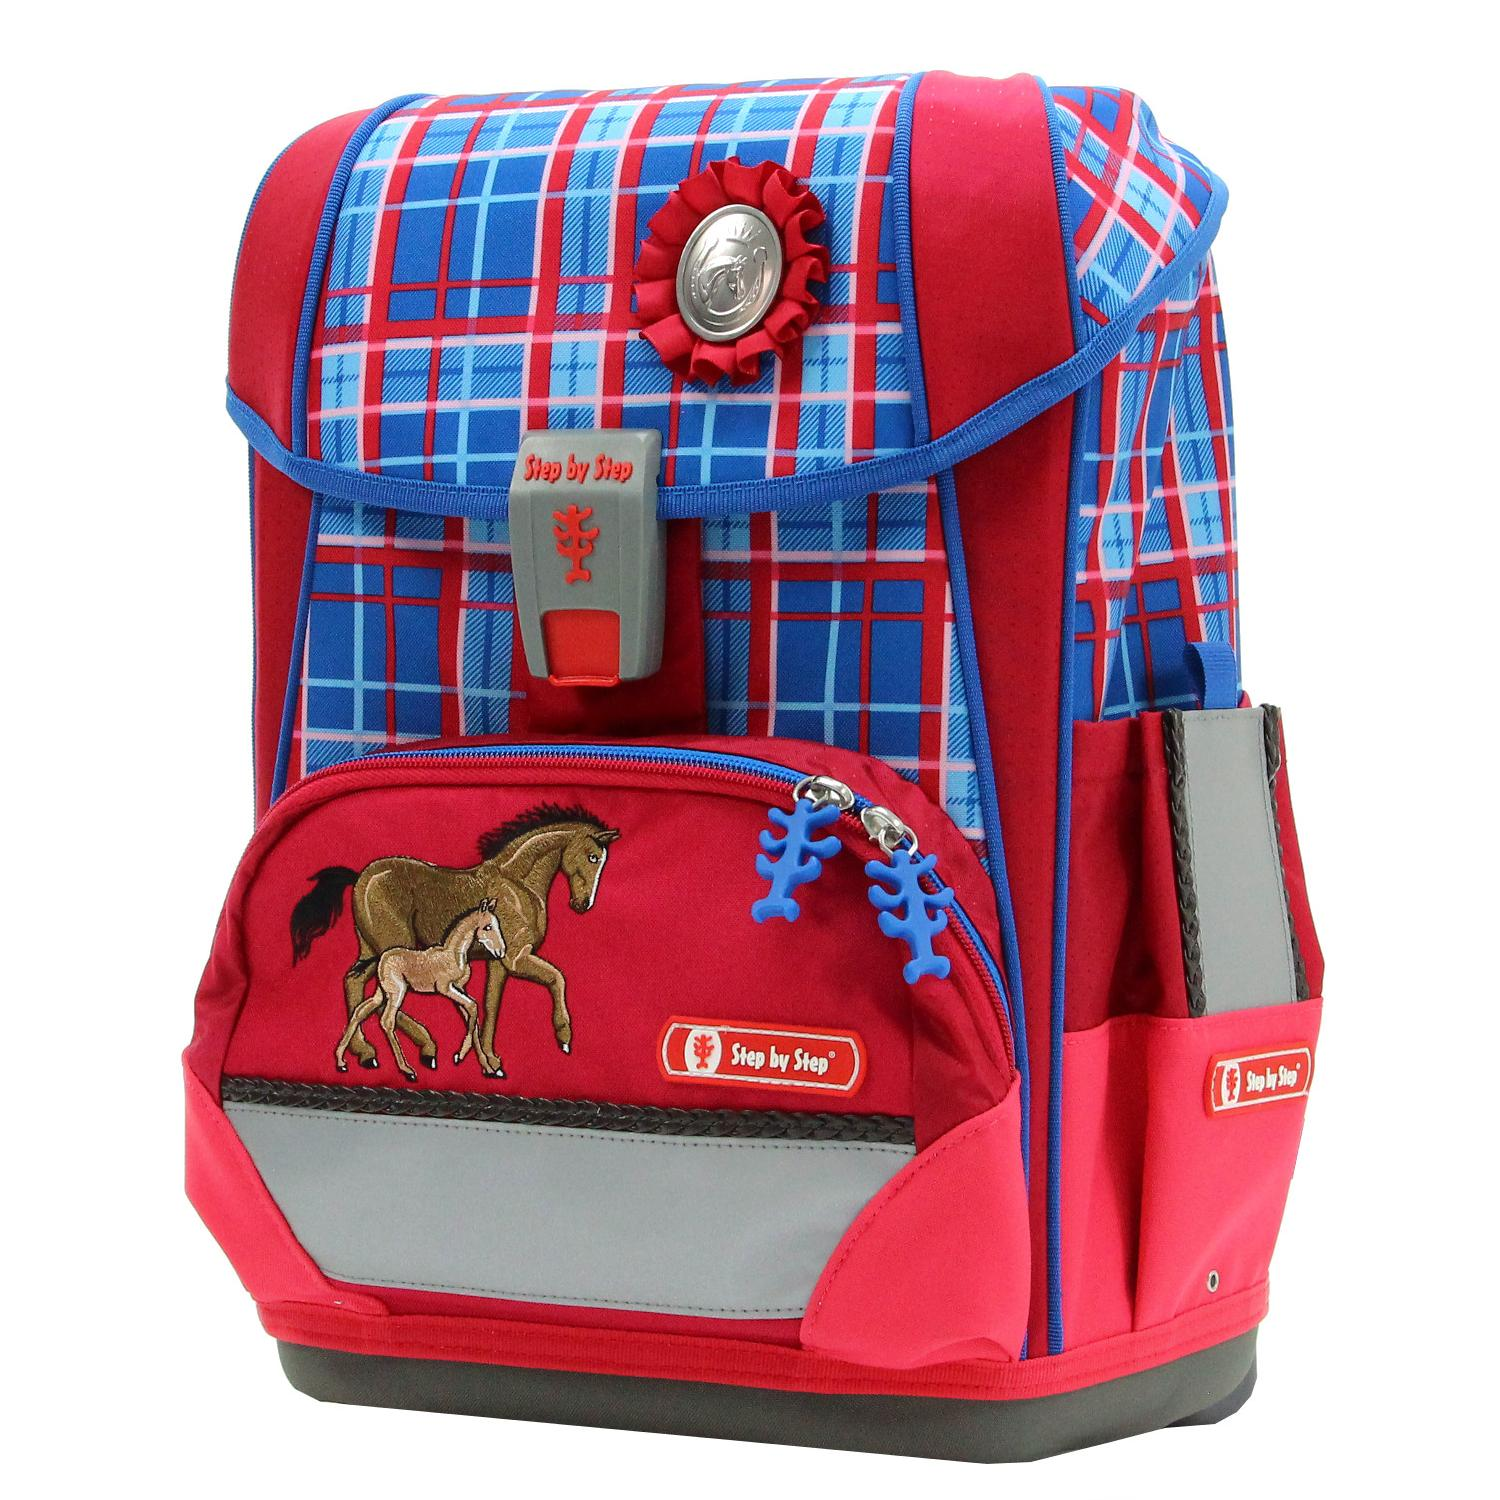 0f43cf0038b01 Tornister Step By Step Light II Set 4 cz. Horse Family Hama 138504 ...